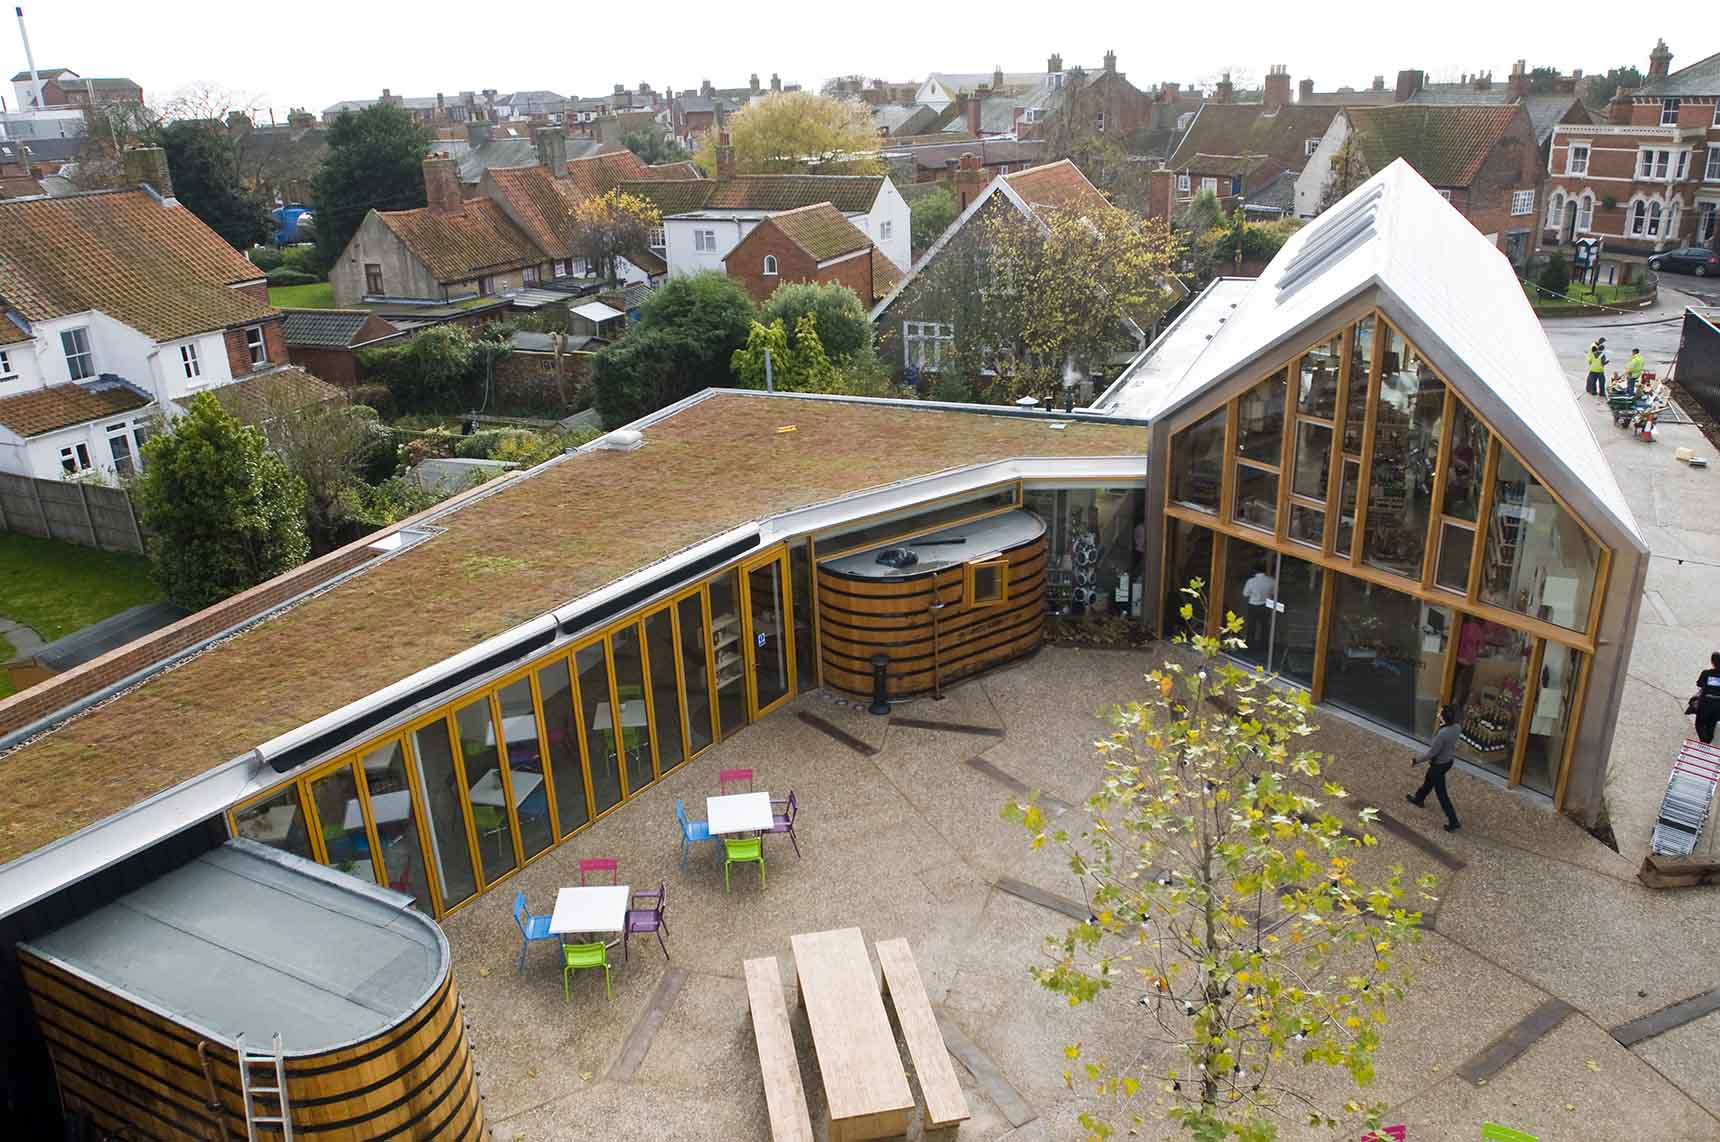 Aerial view of square showing reused groynes set into flooring and the green roof to the cafe.